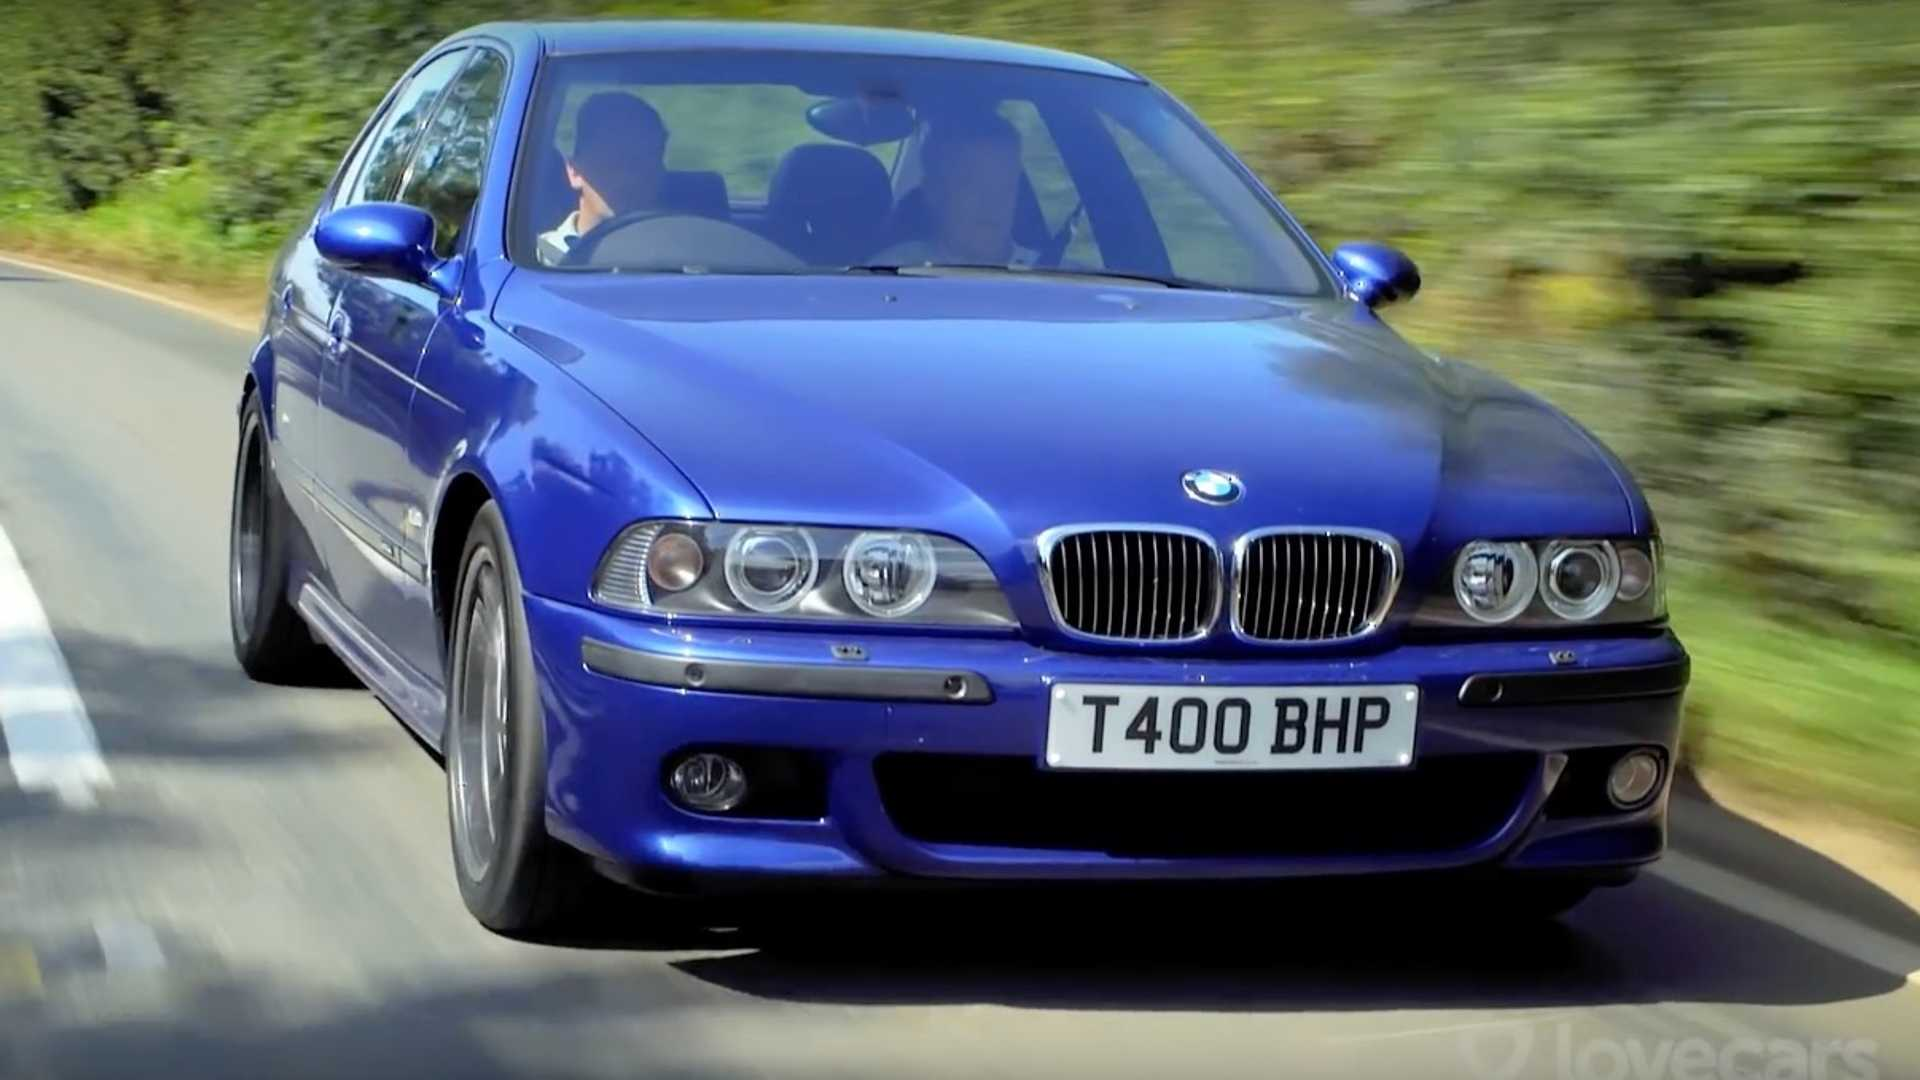 Tiff Needell drives all BMW M5s back-to-back